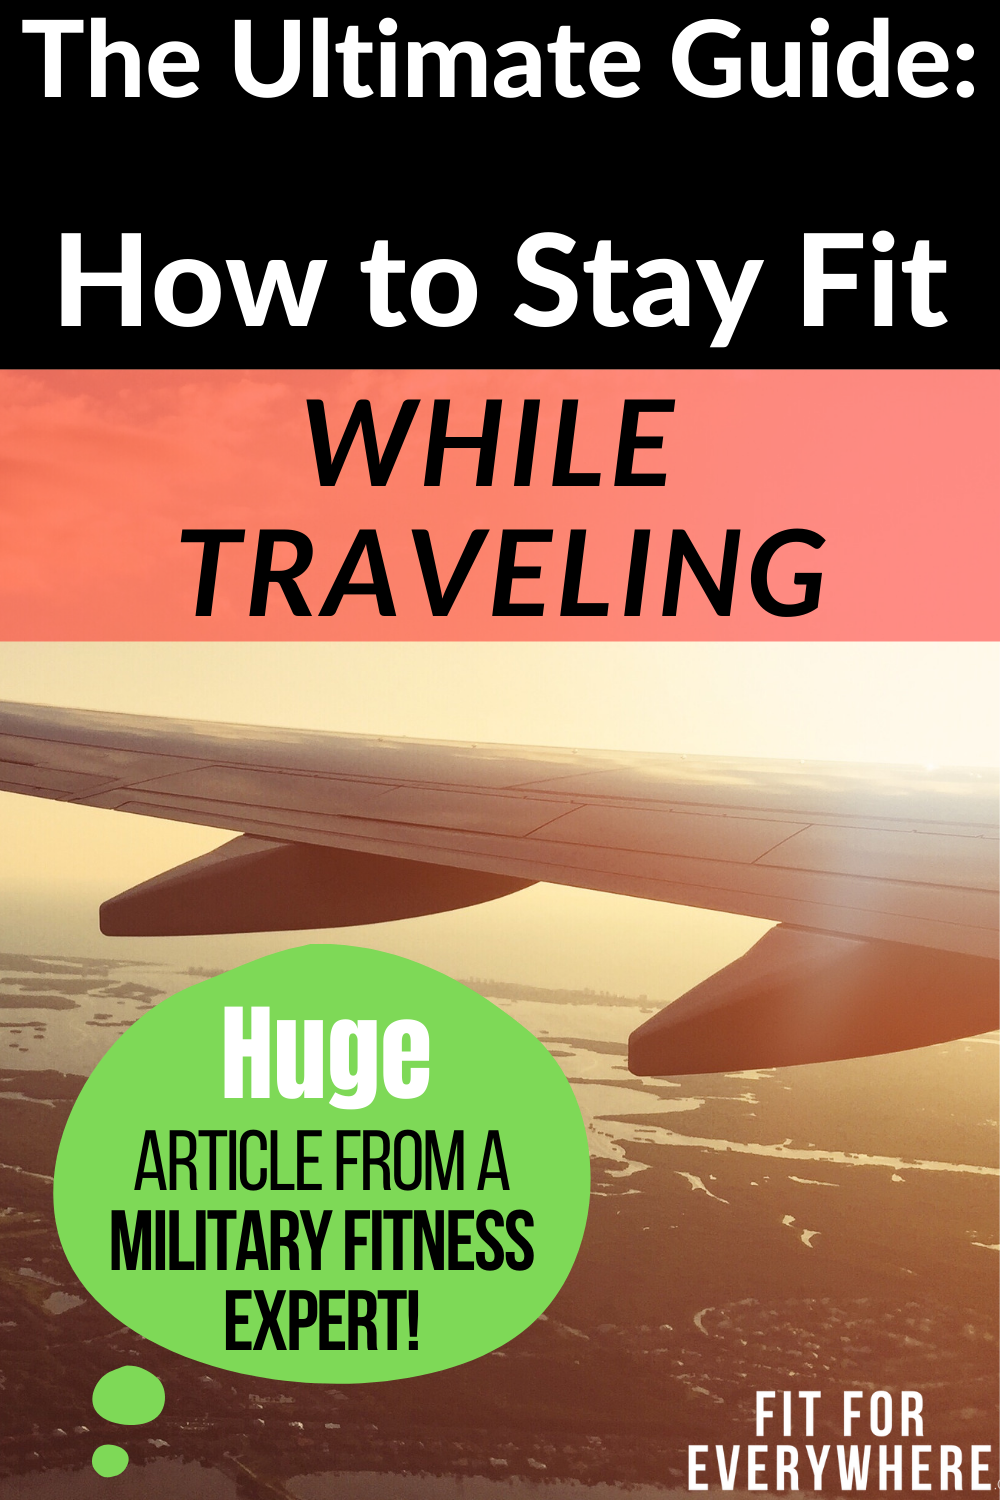 The internet's biggest travel-fitness post! Tips on staying in great shape while traveling, with adv...